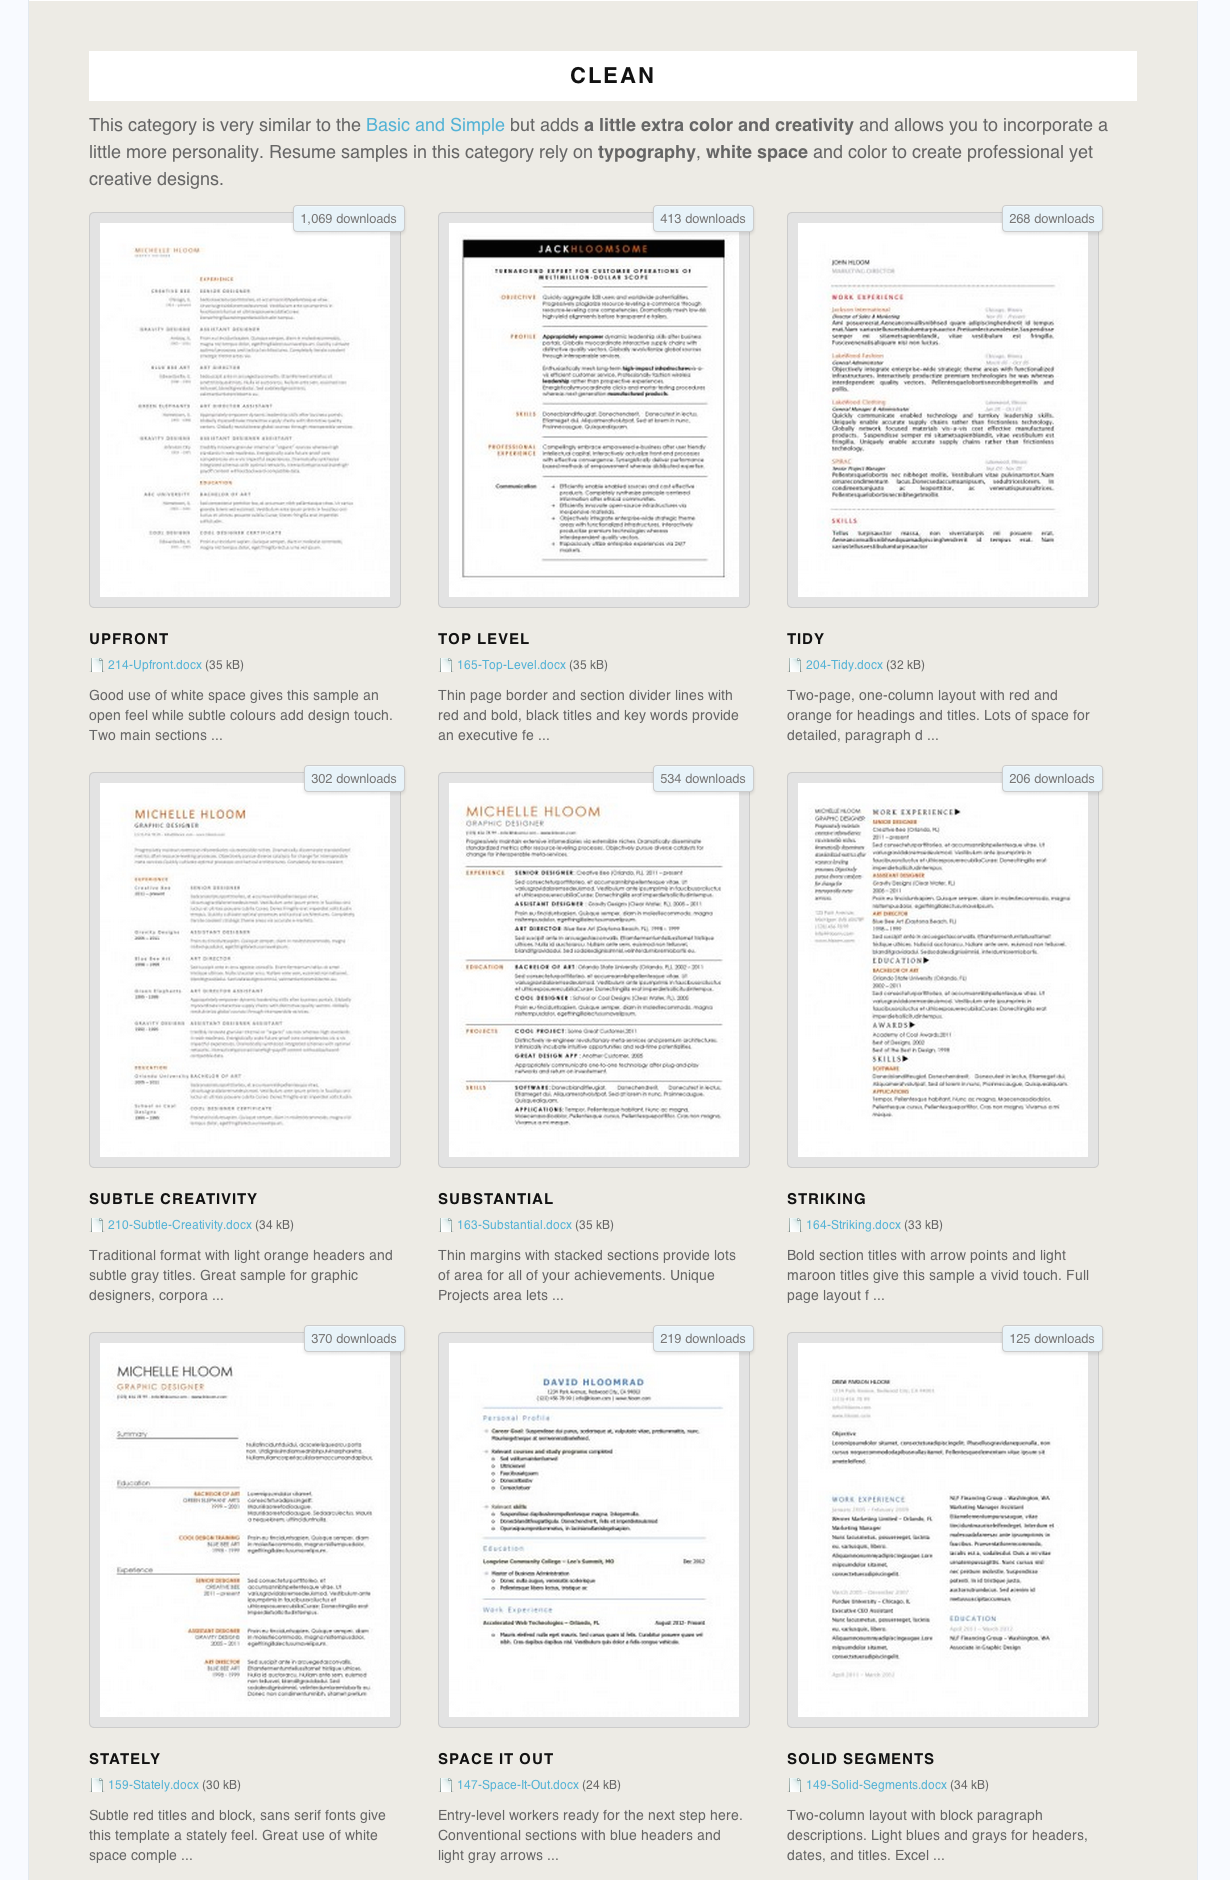 275 free resume templates you can use right now the muse resume formatting ideas